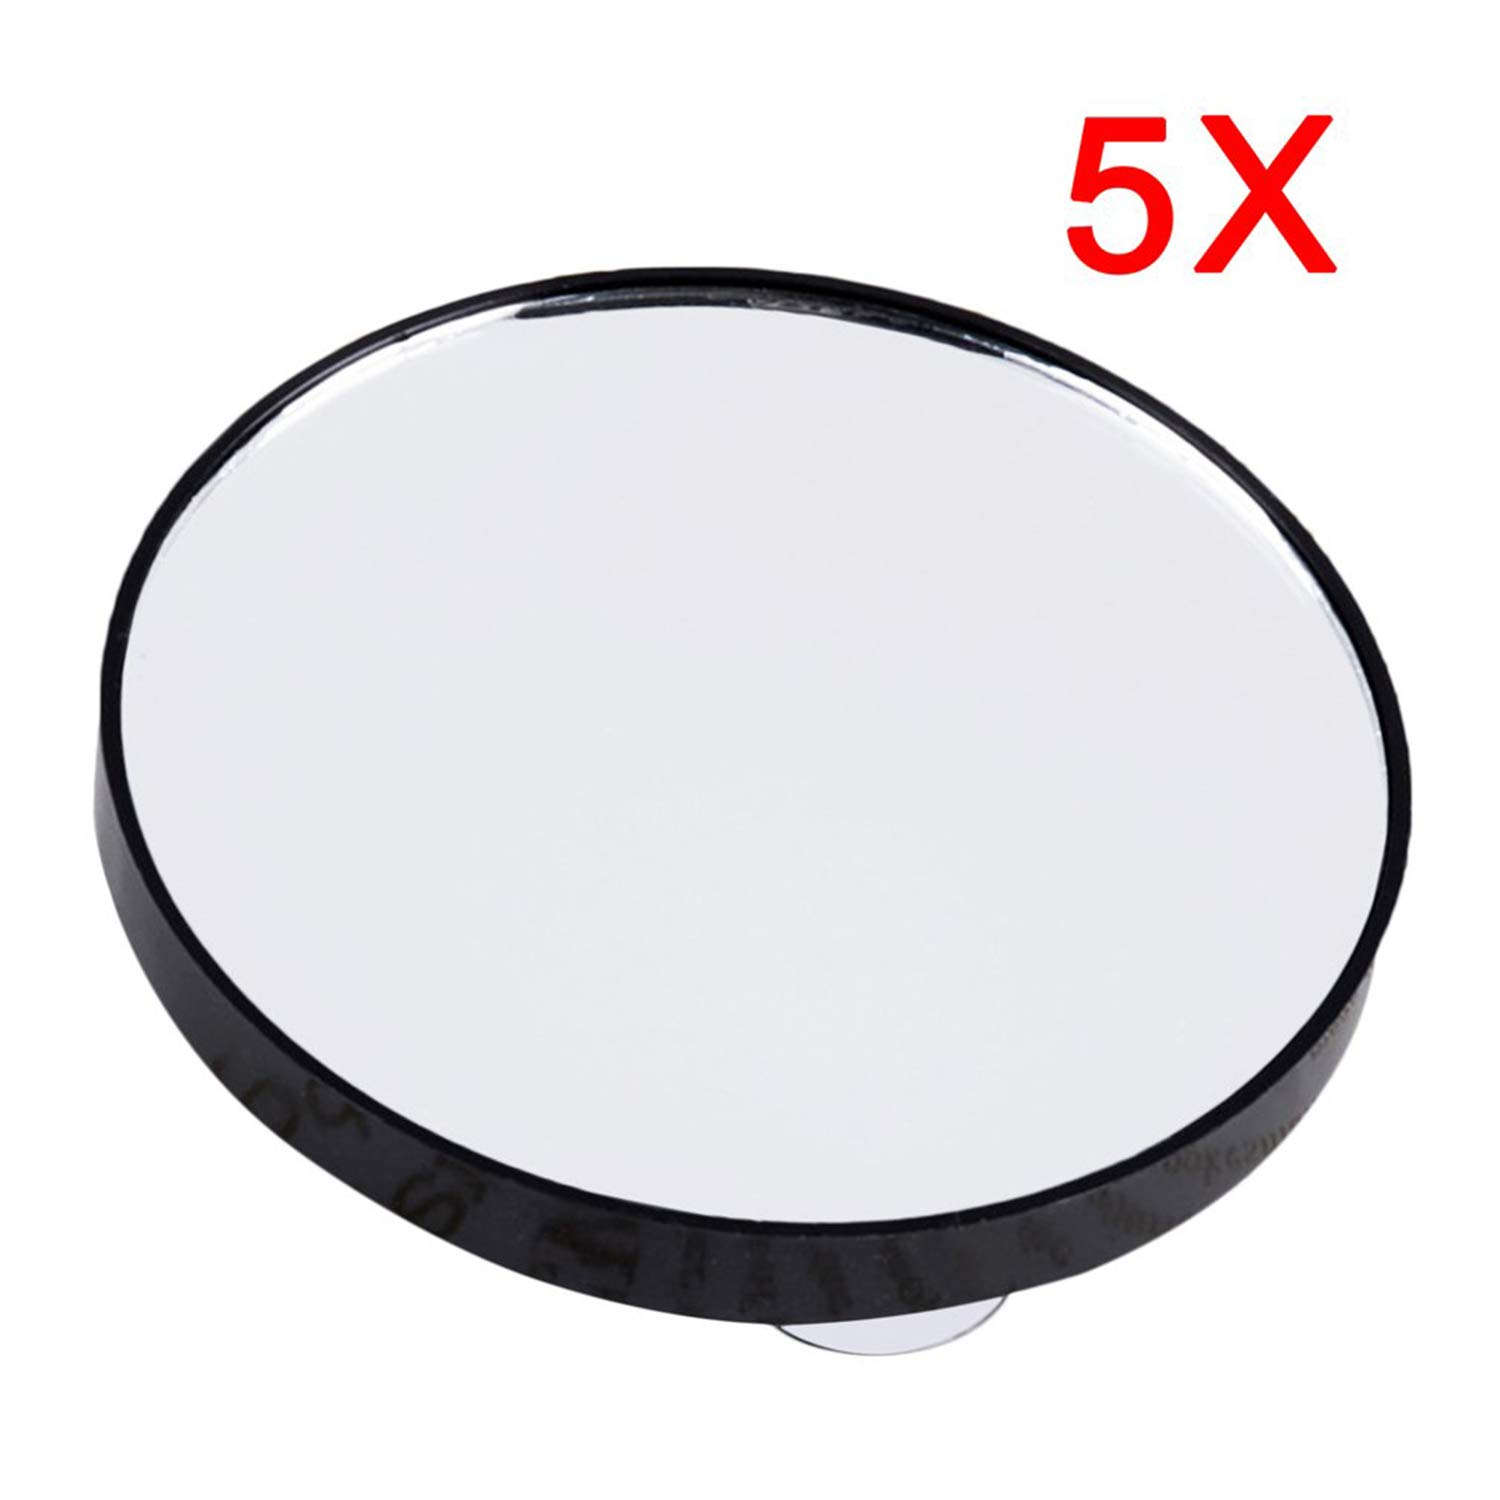 Foreverharbor Vanity Makeup Mirror 5X 10X 15X Magnifying Mirror with Two Suction Cups Cosmetics Tools Mini Round Mirror Bathroom Mirror